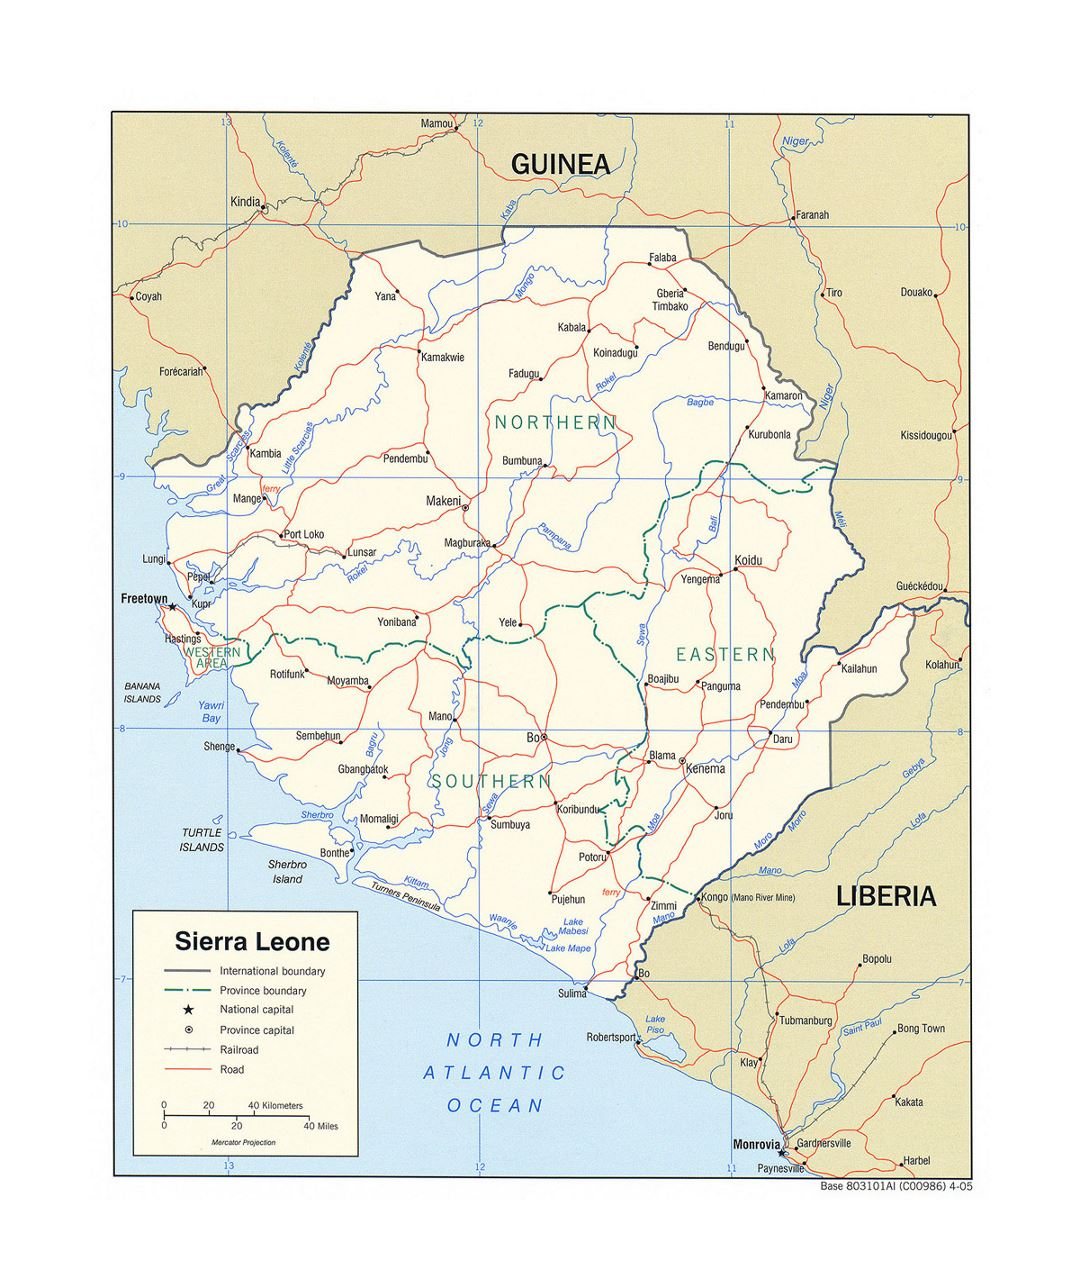 Detailed political and administrative map of Sierra Leone with roads, railroads and major cities - 2005